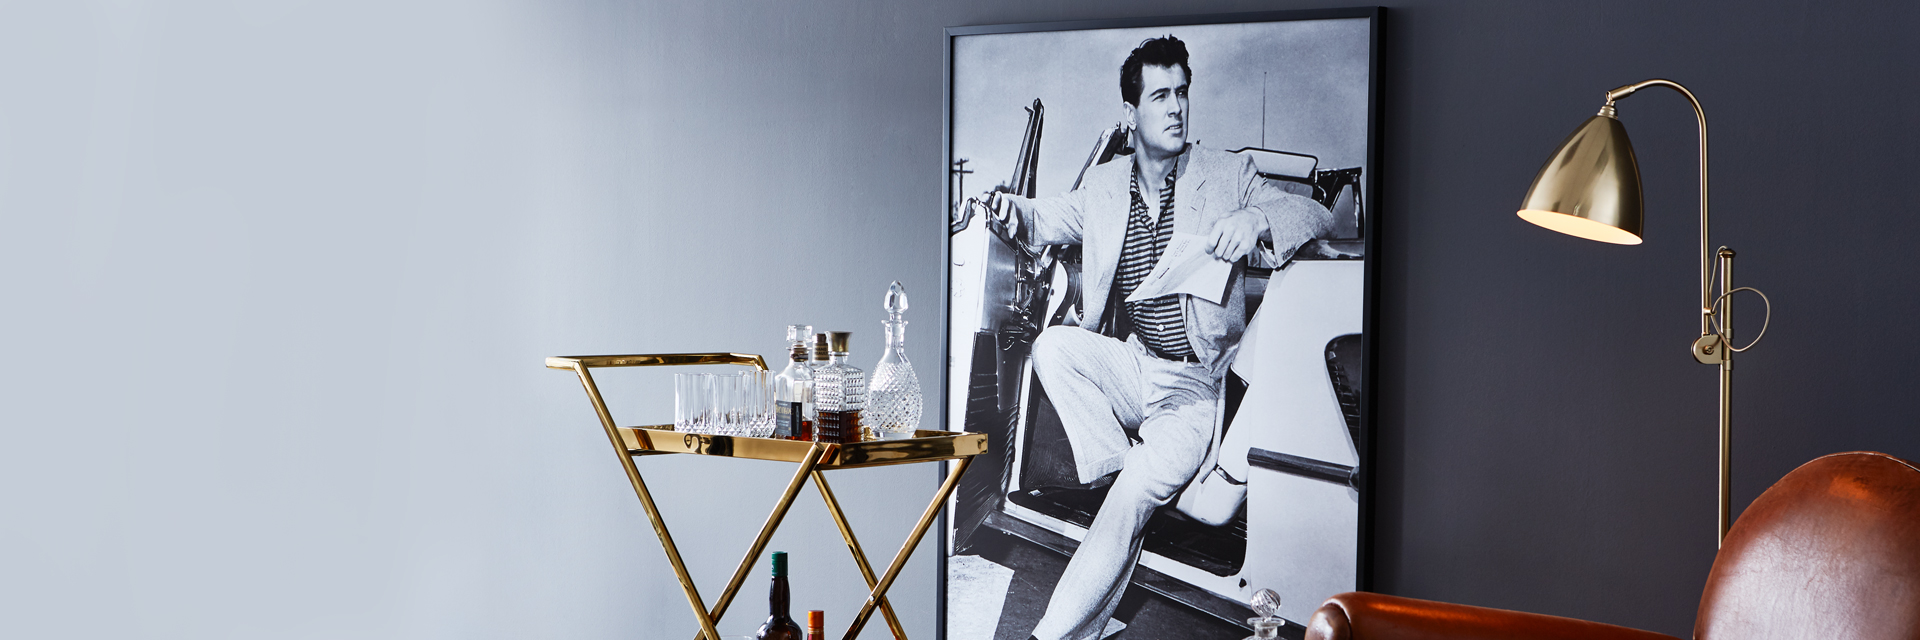 Rock Hudson on canvas